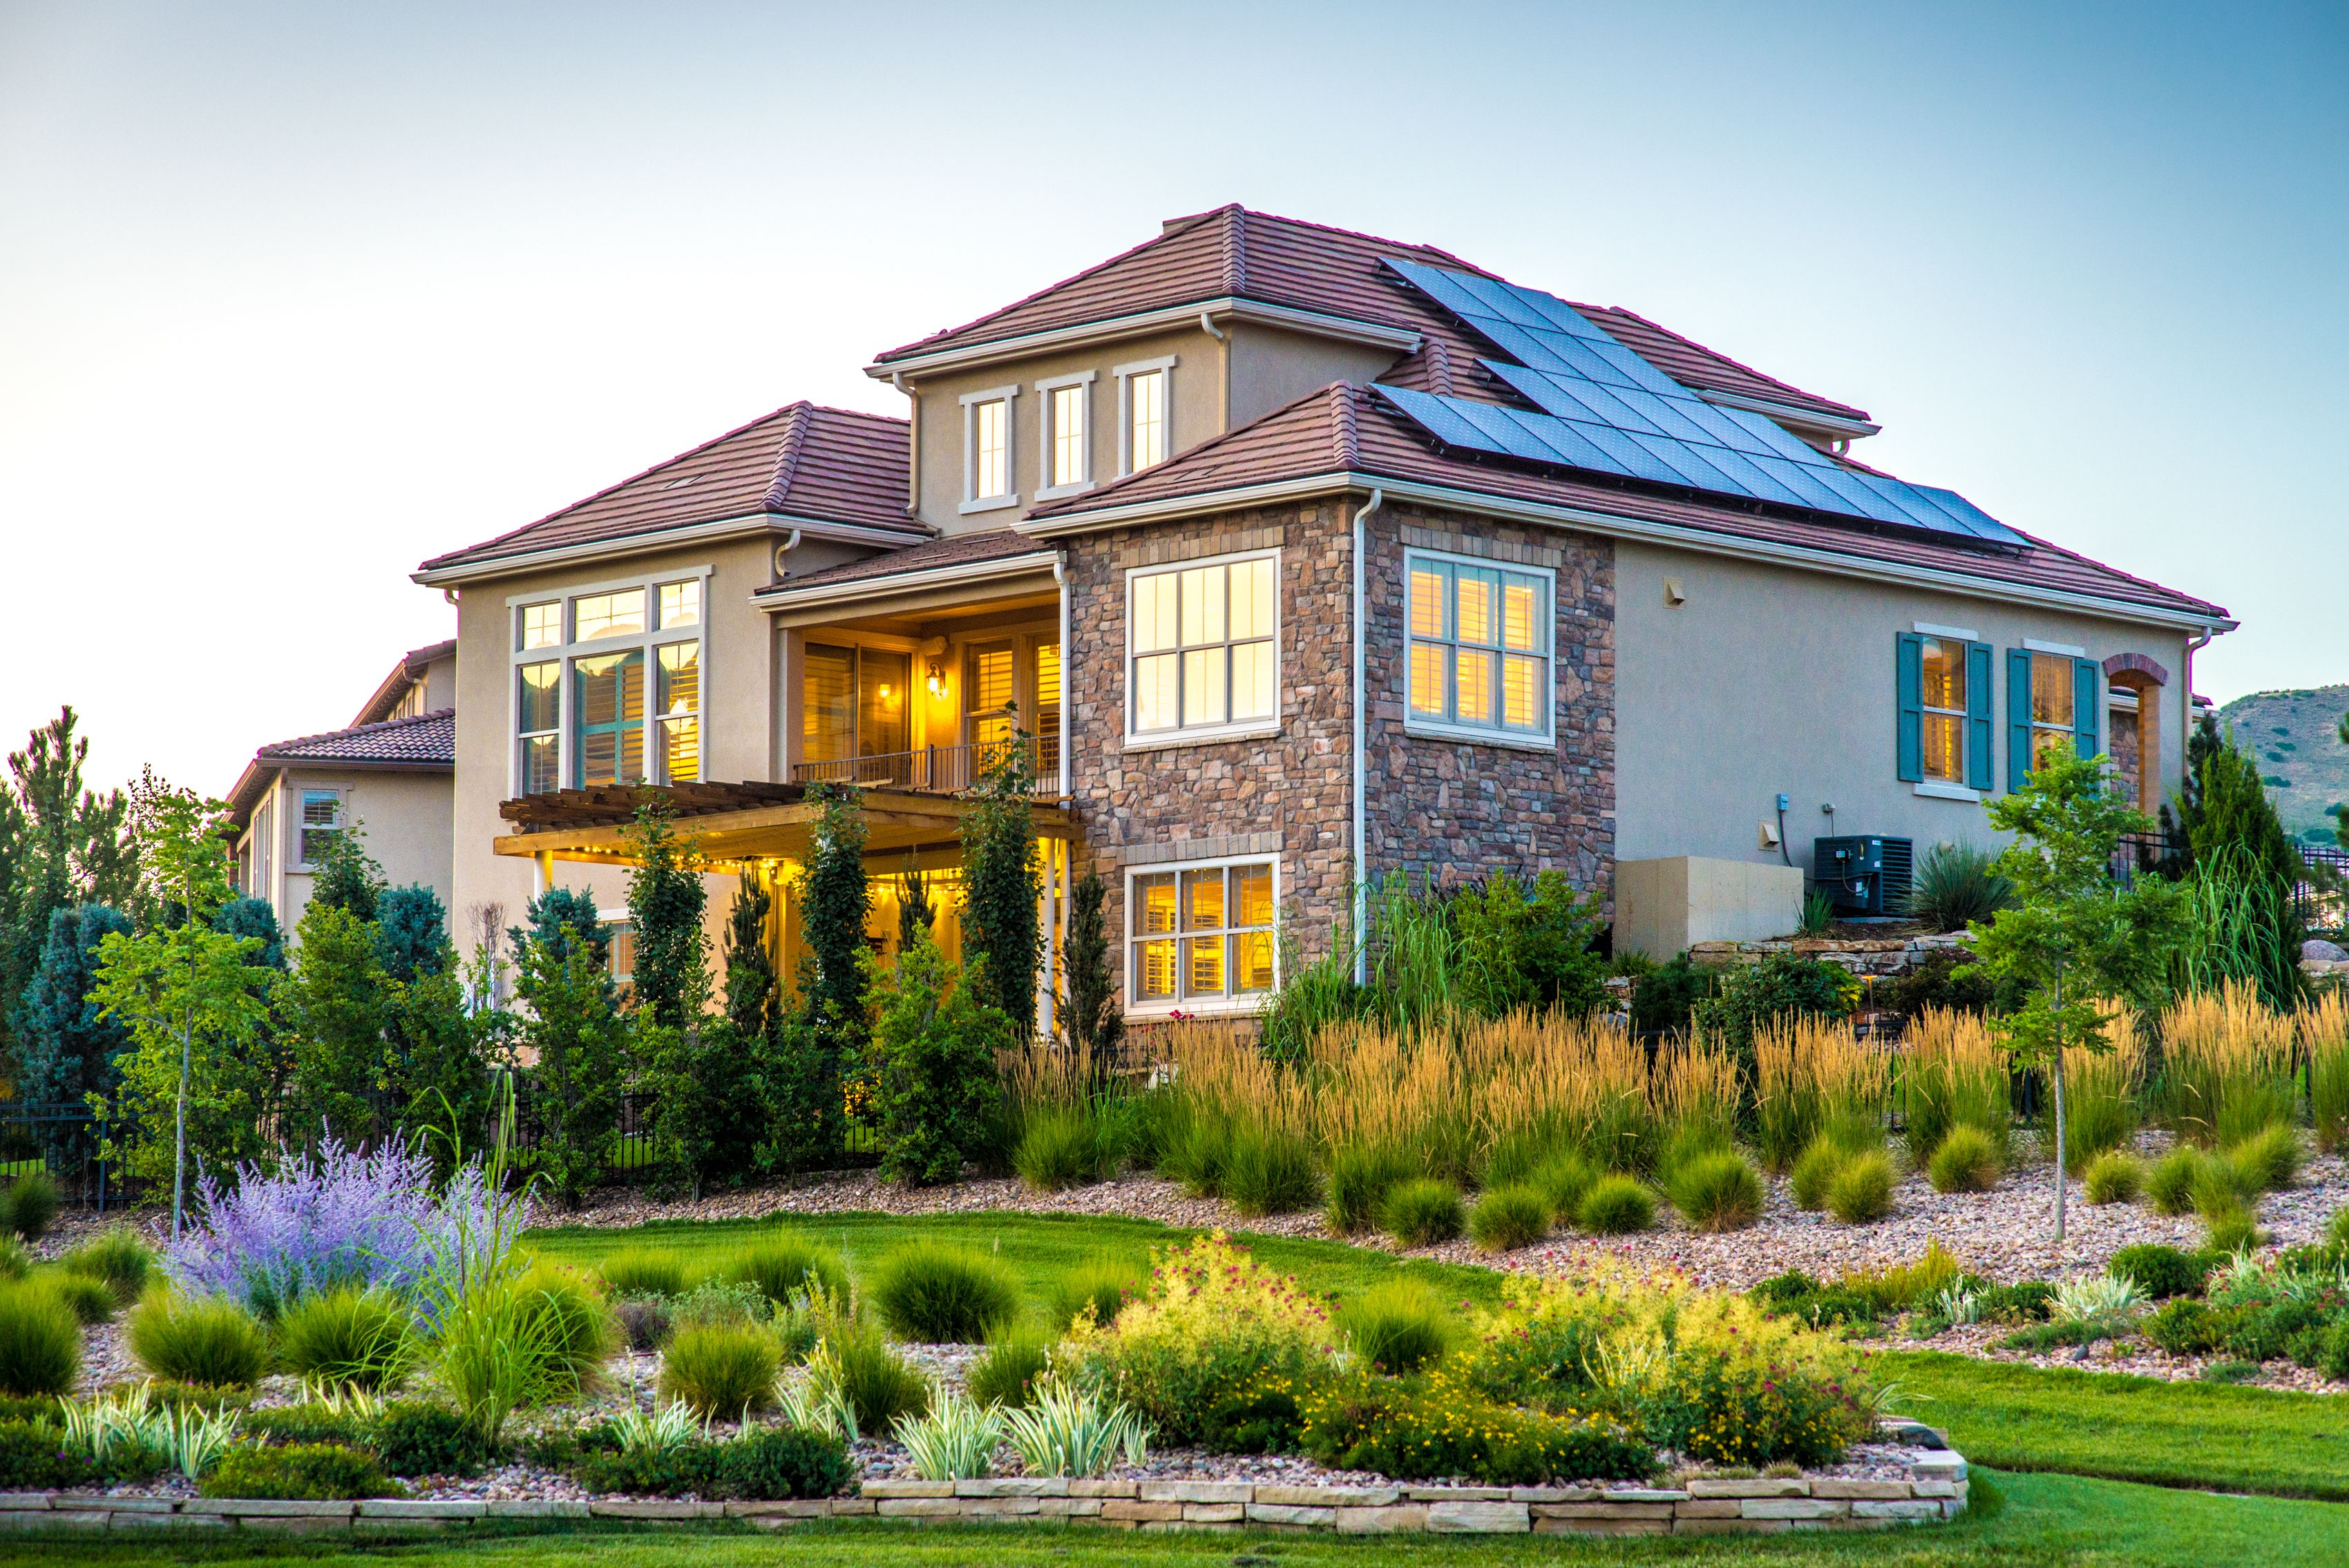 Soltera Home In Lakewood, Co 3 Bedroom, 4 Bath, 4,093